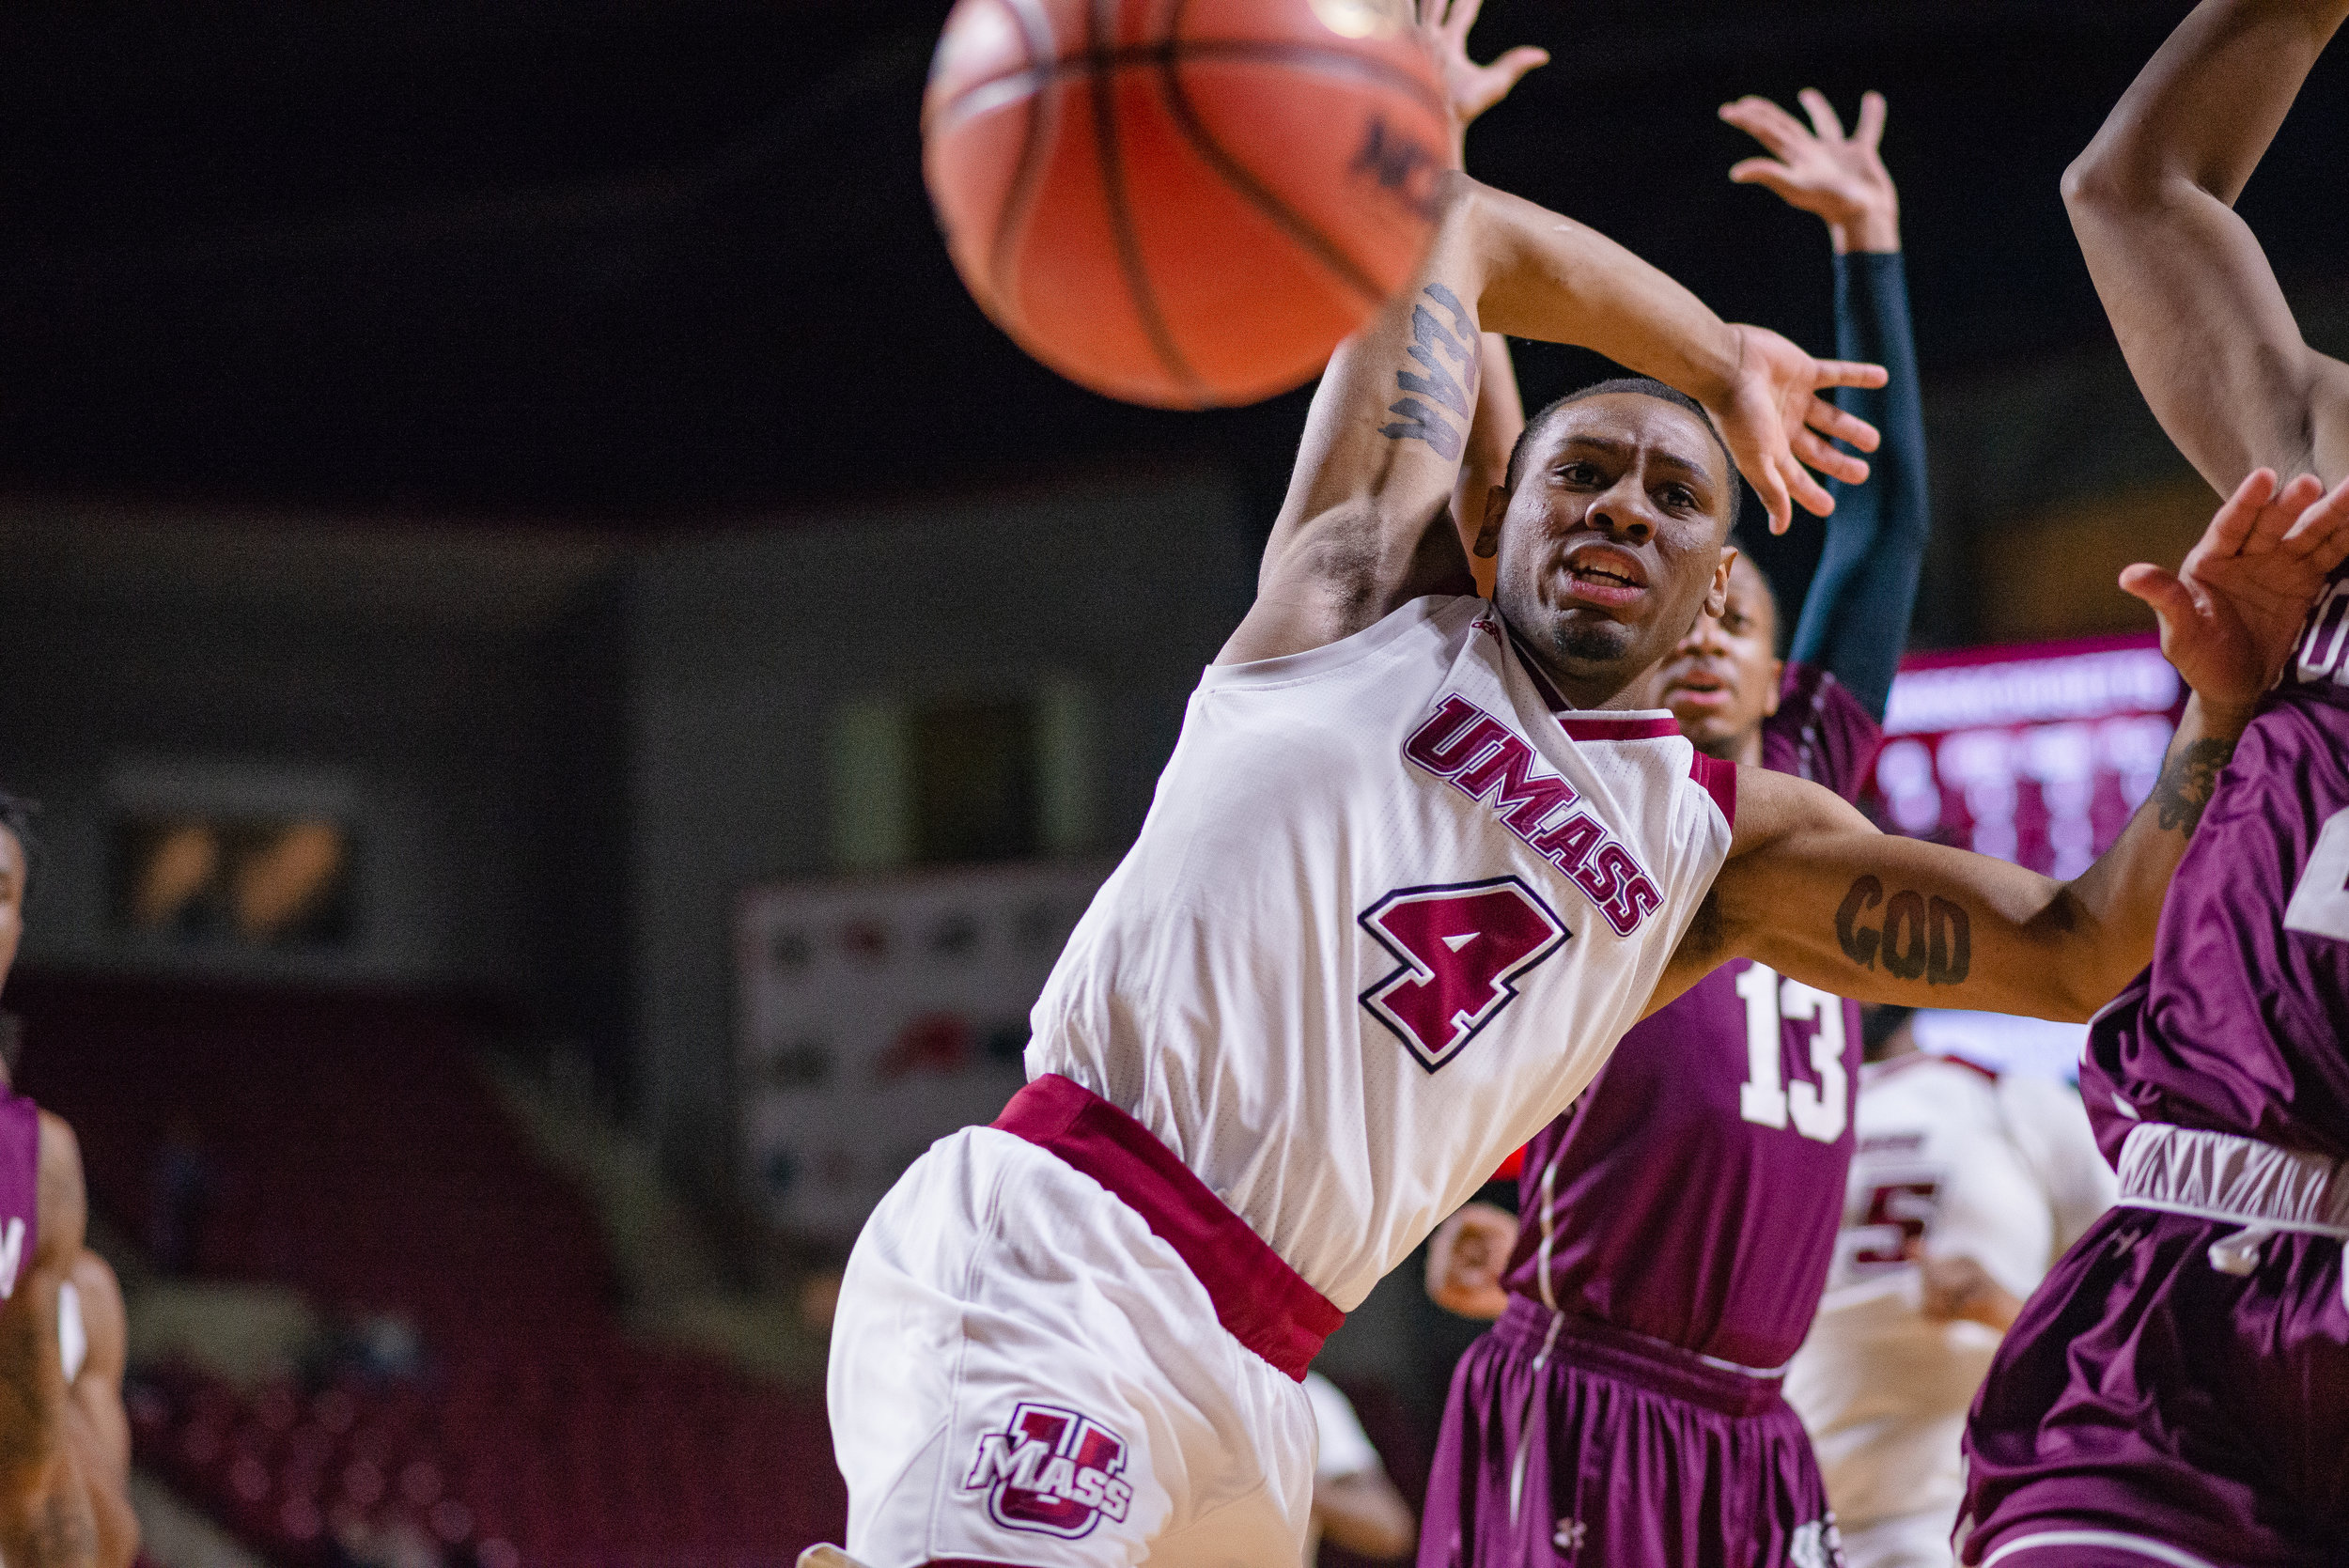 UMass Men's Basketball vs Fordham on Feb. 6, 2019 at the Mullins Center in Amherst.  (Photo by Judith Gibson-Okunieff)